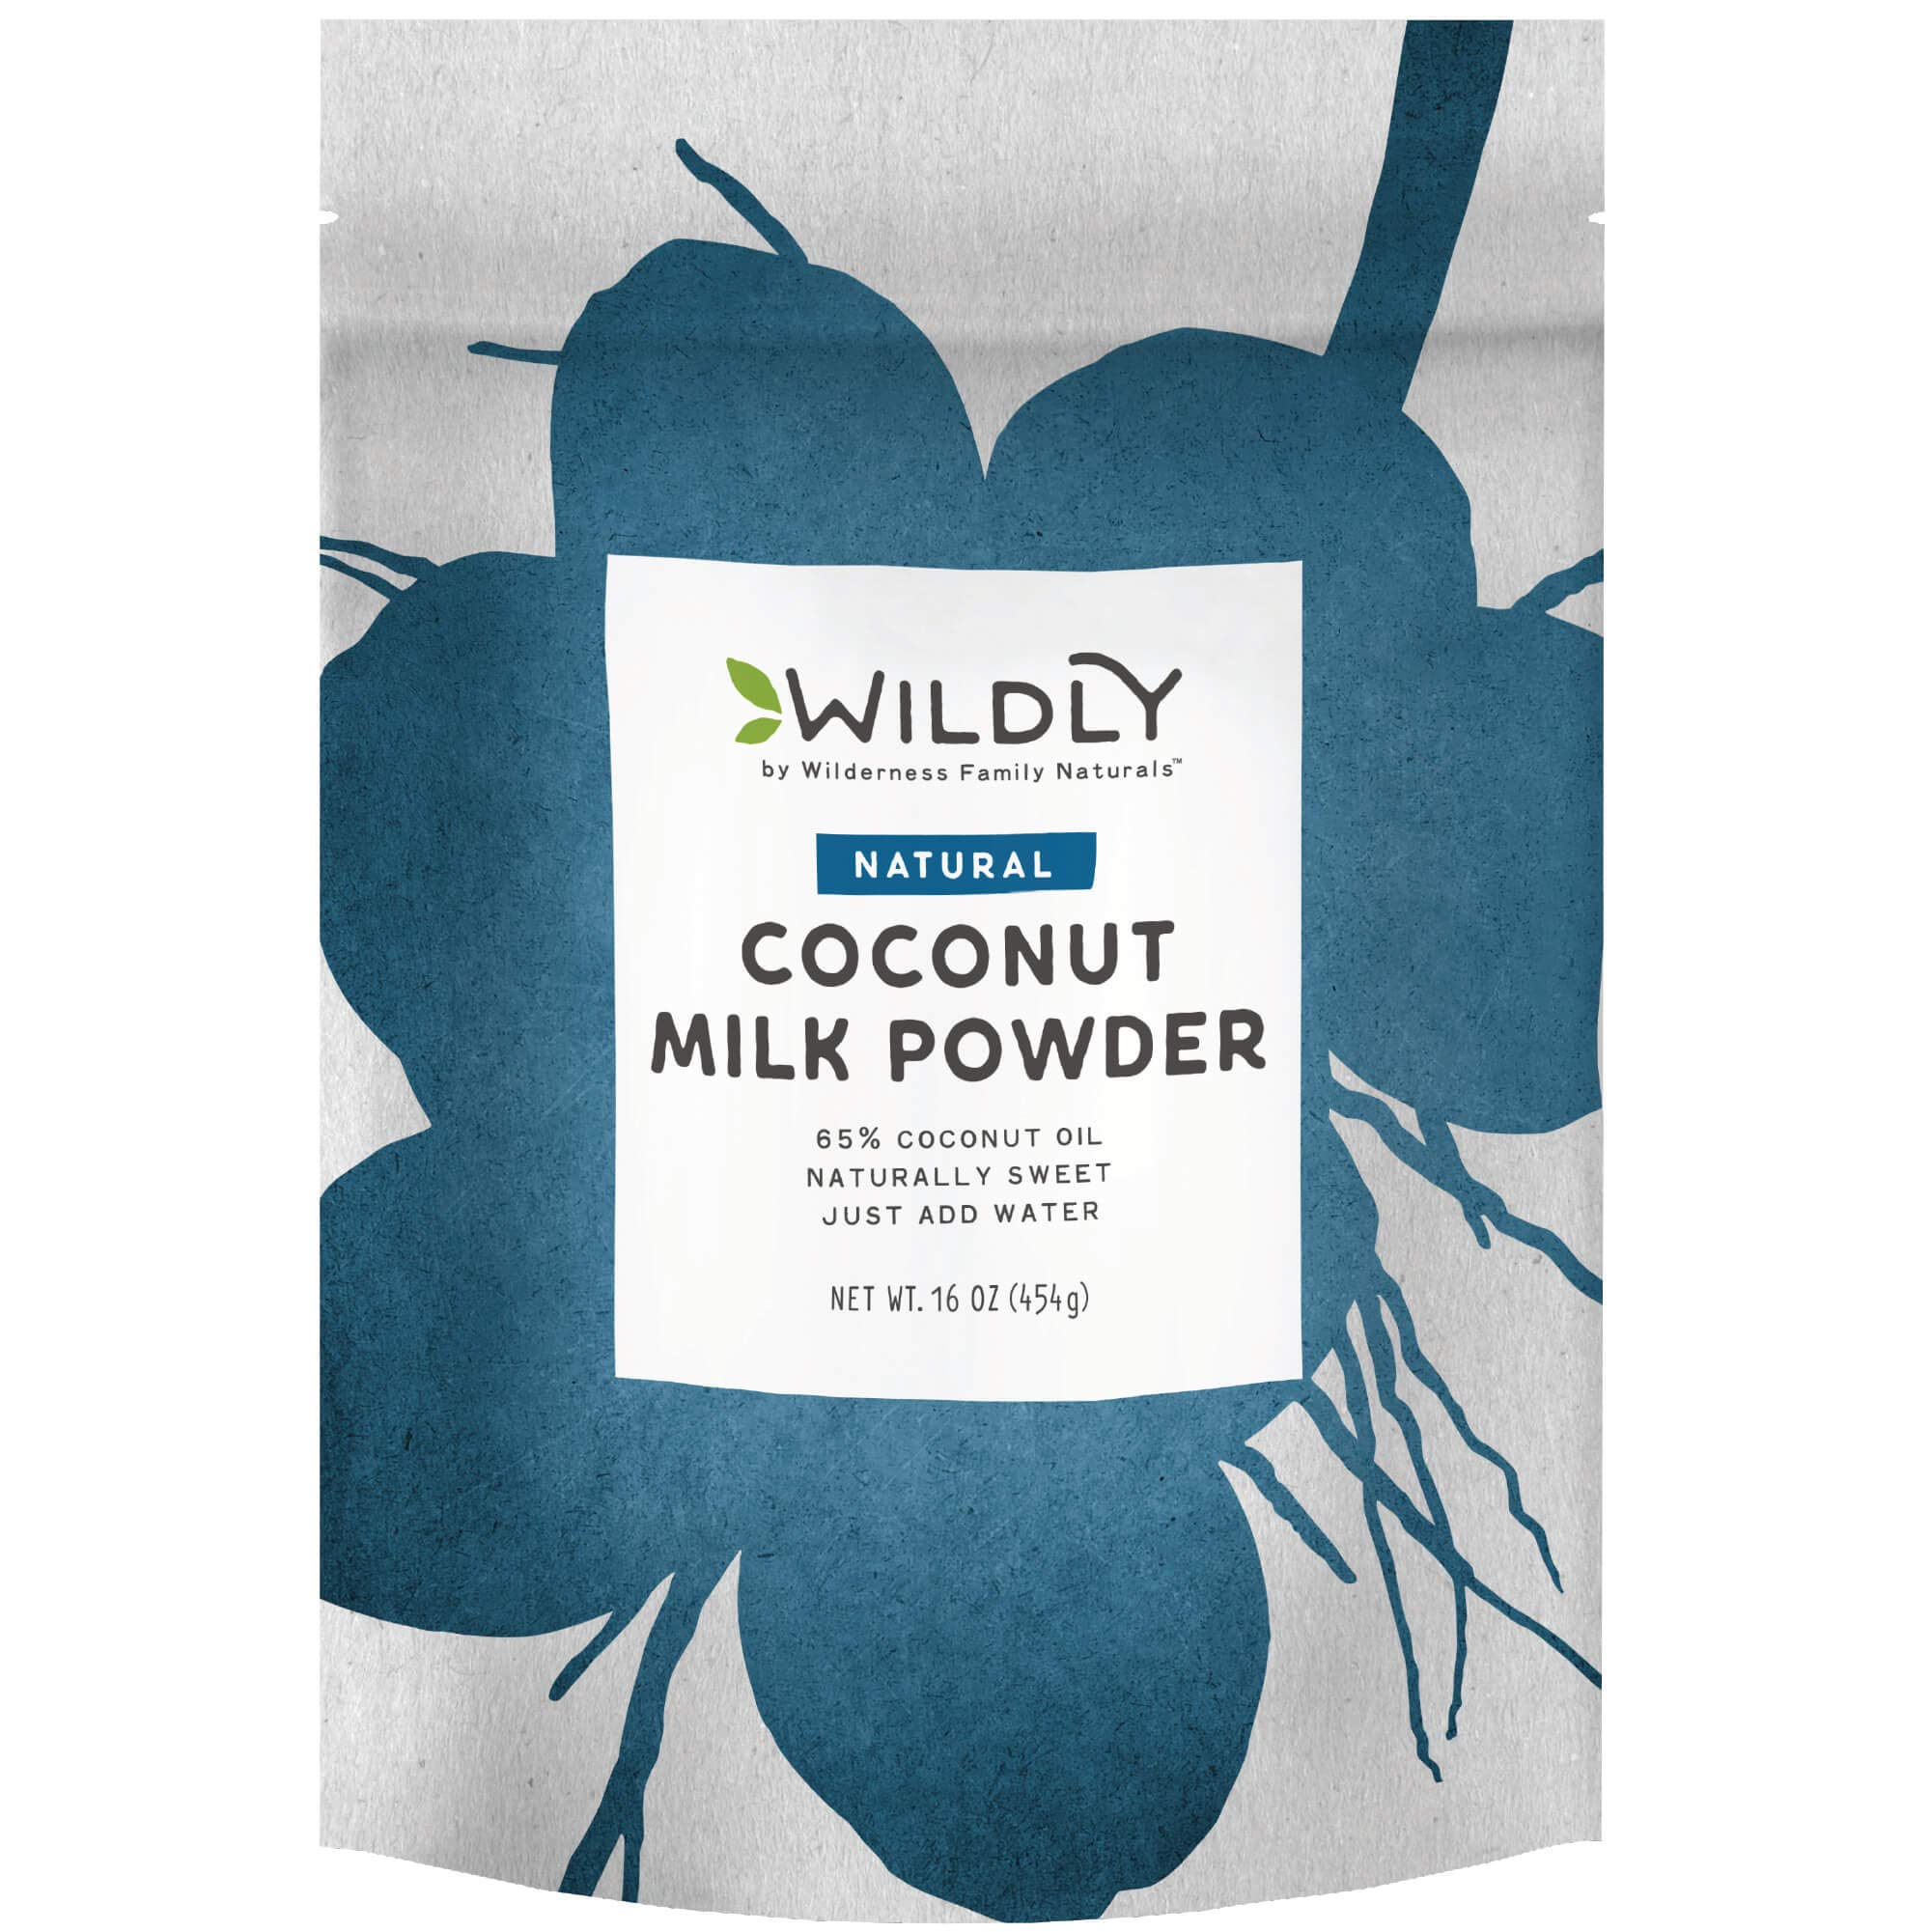 Wildly Coconut Milk Powder - Powdered Milk - Dairy Free Milk Powder - Dry Milk Powder For Baking - Unsweetened Coconut Milk - Powdered Coconut Milk Powder - Powdered Creamer - 1 Lbs